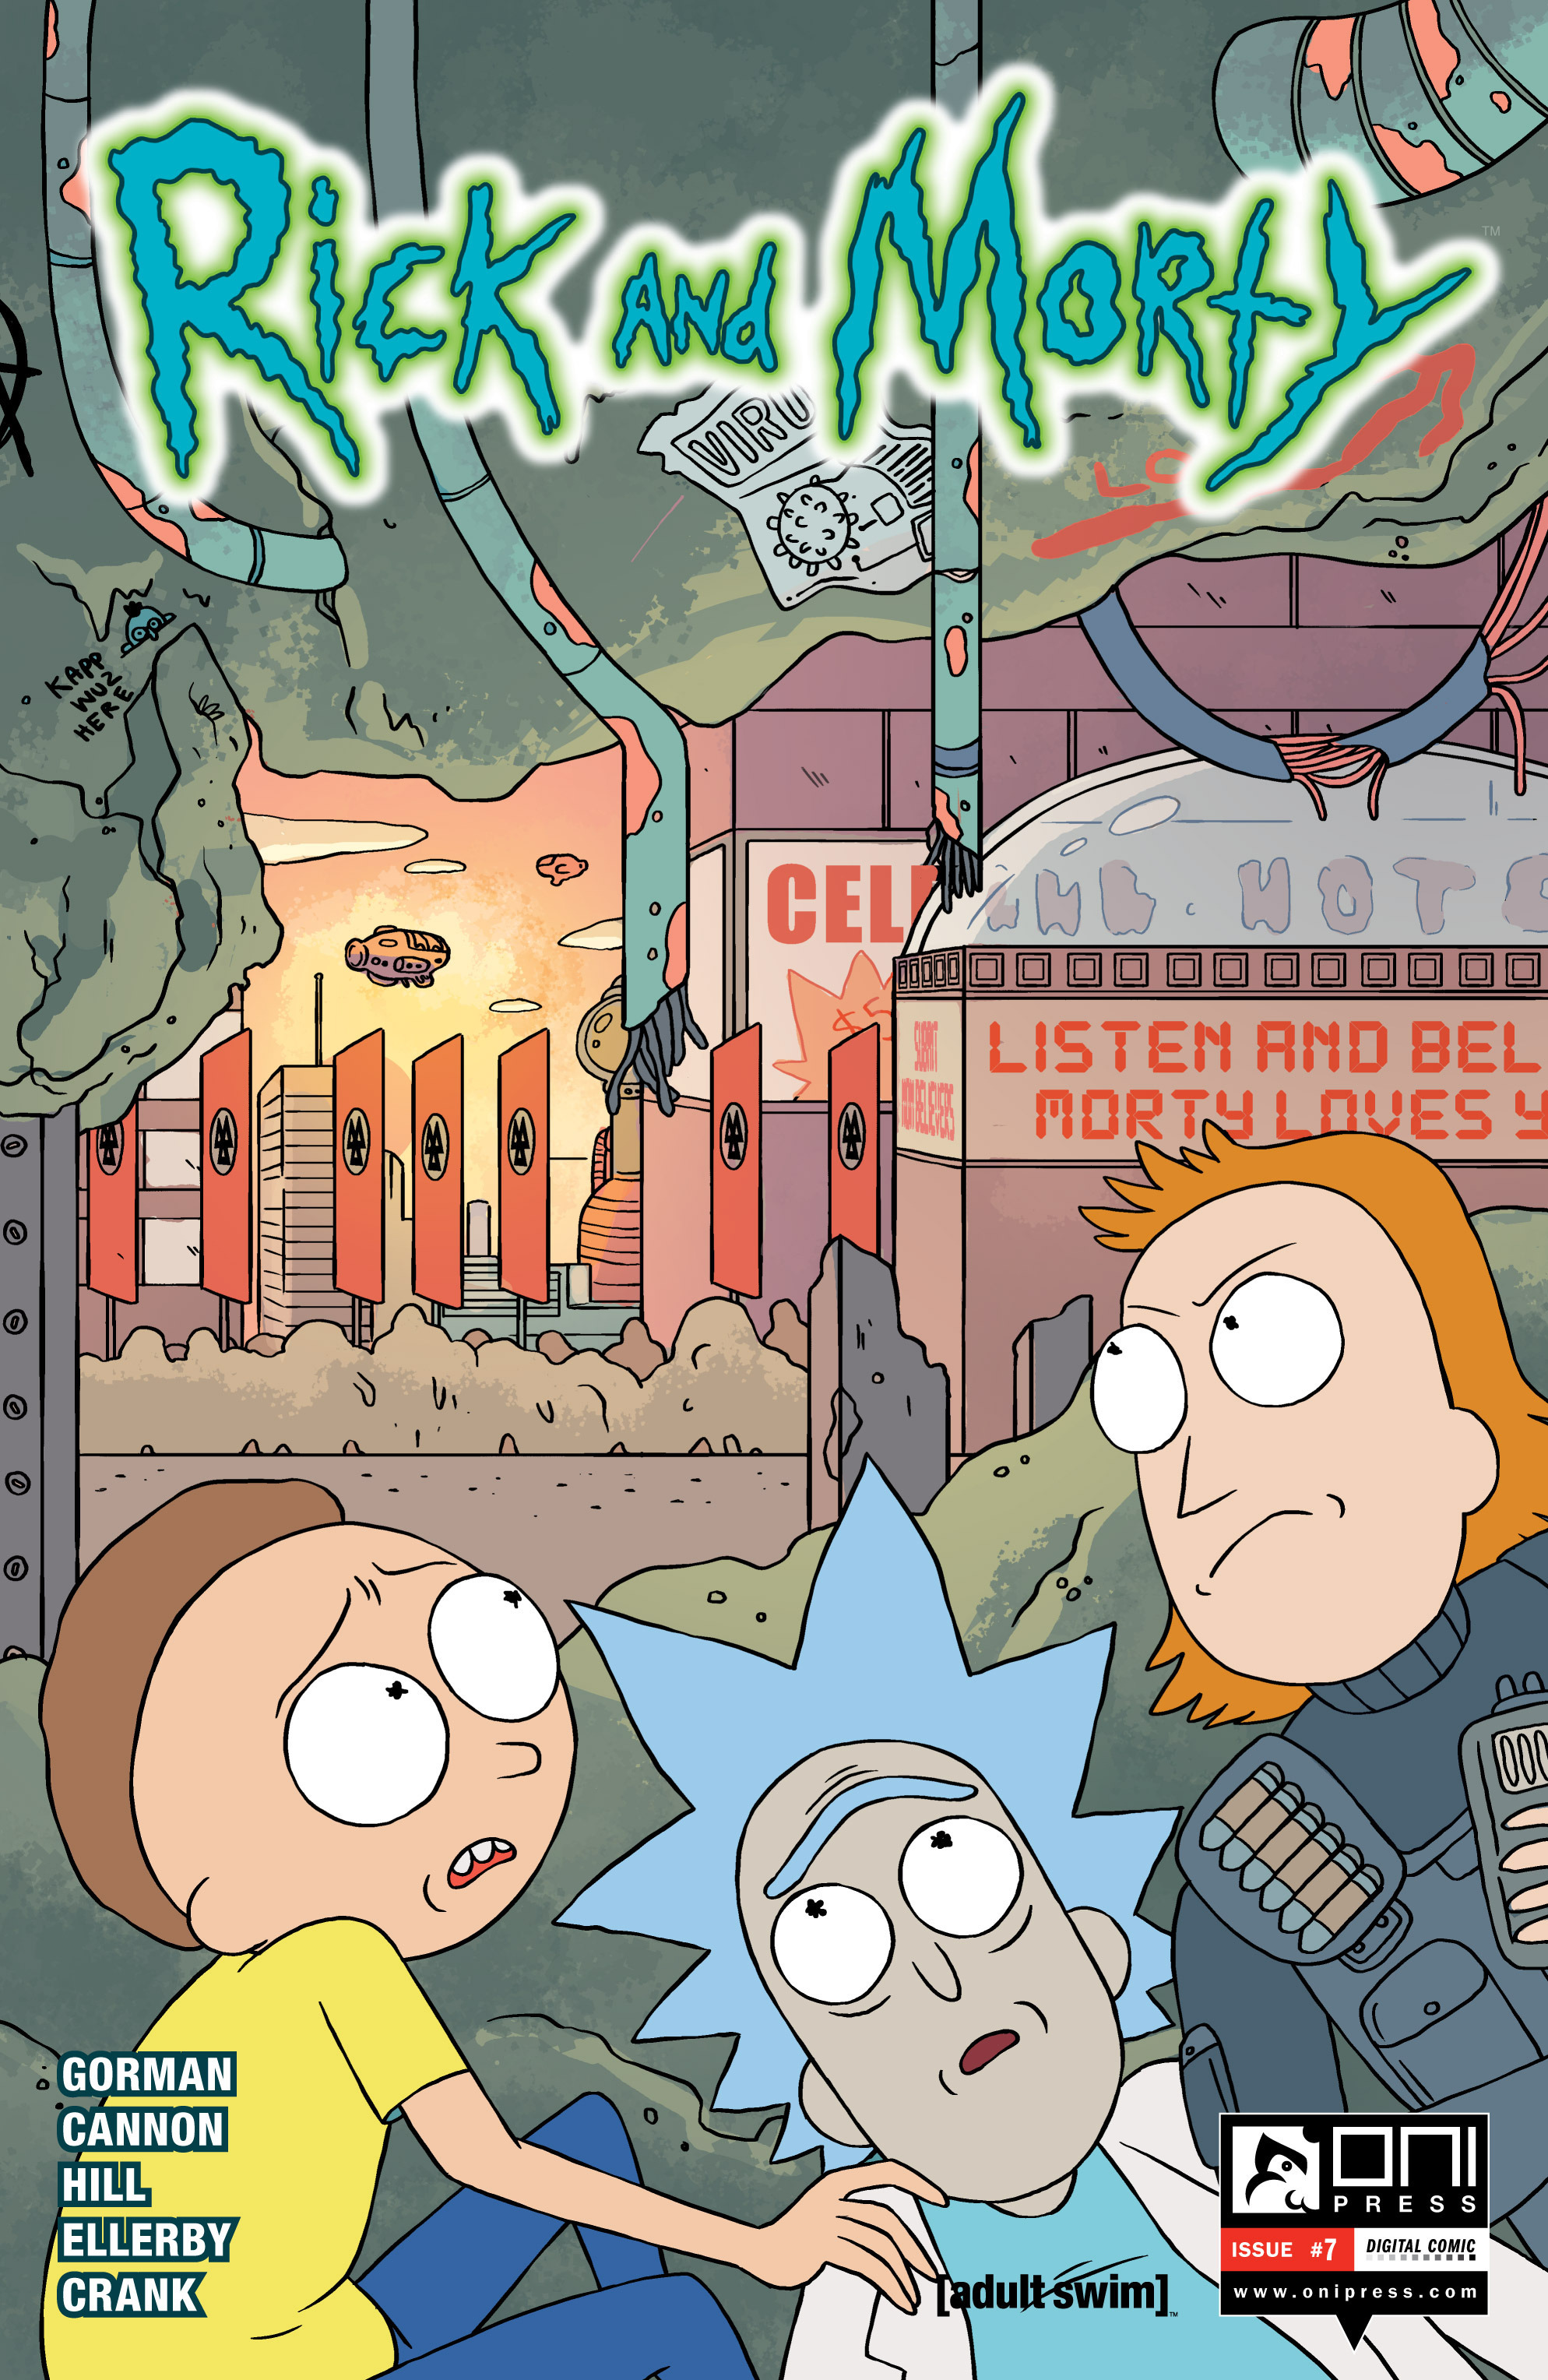 Rick and Morty #2 - CovrPrice